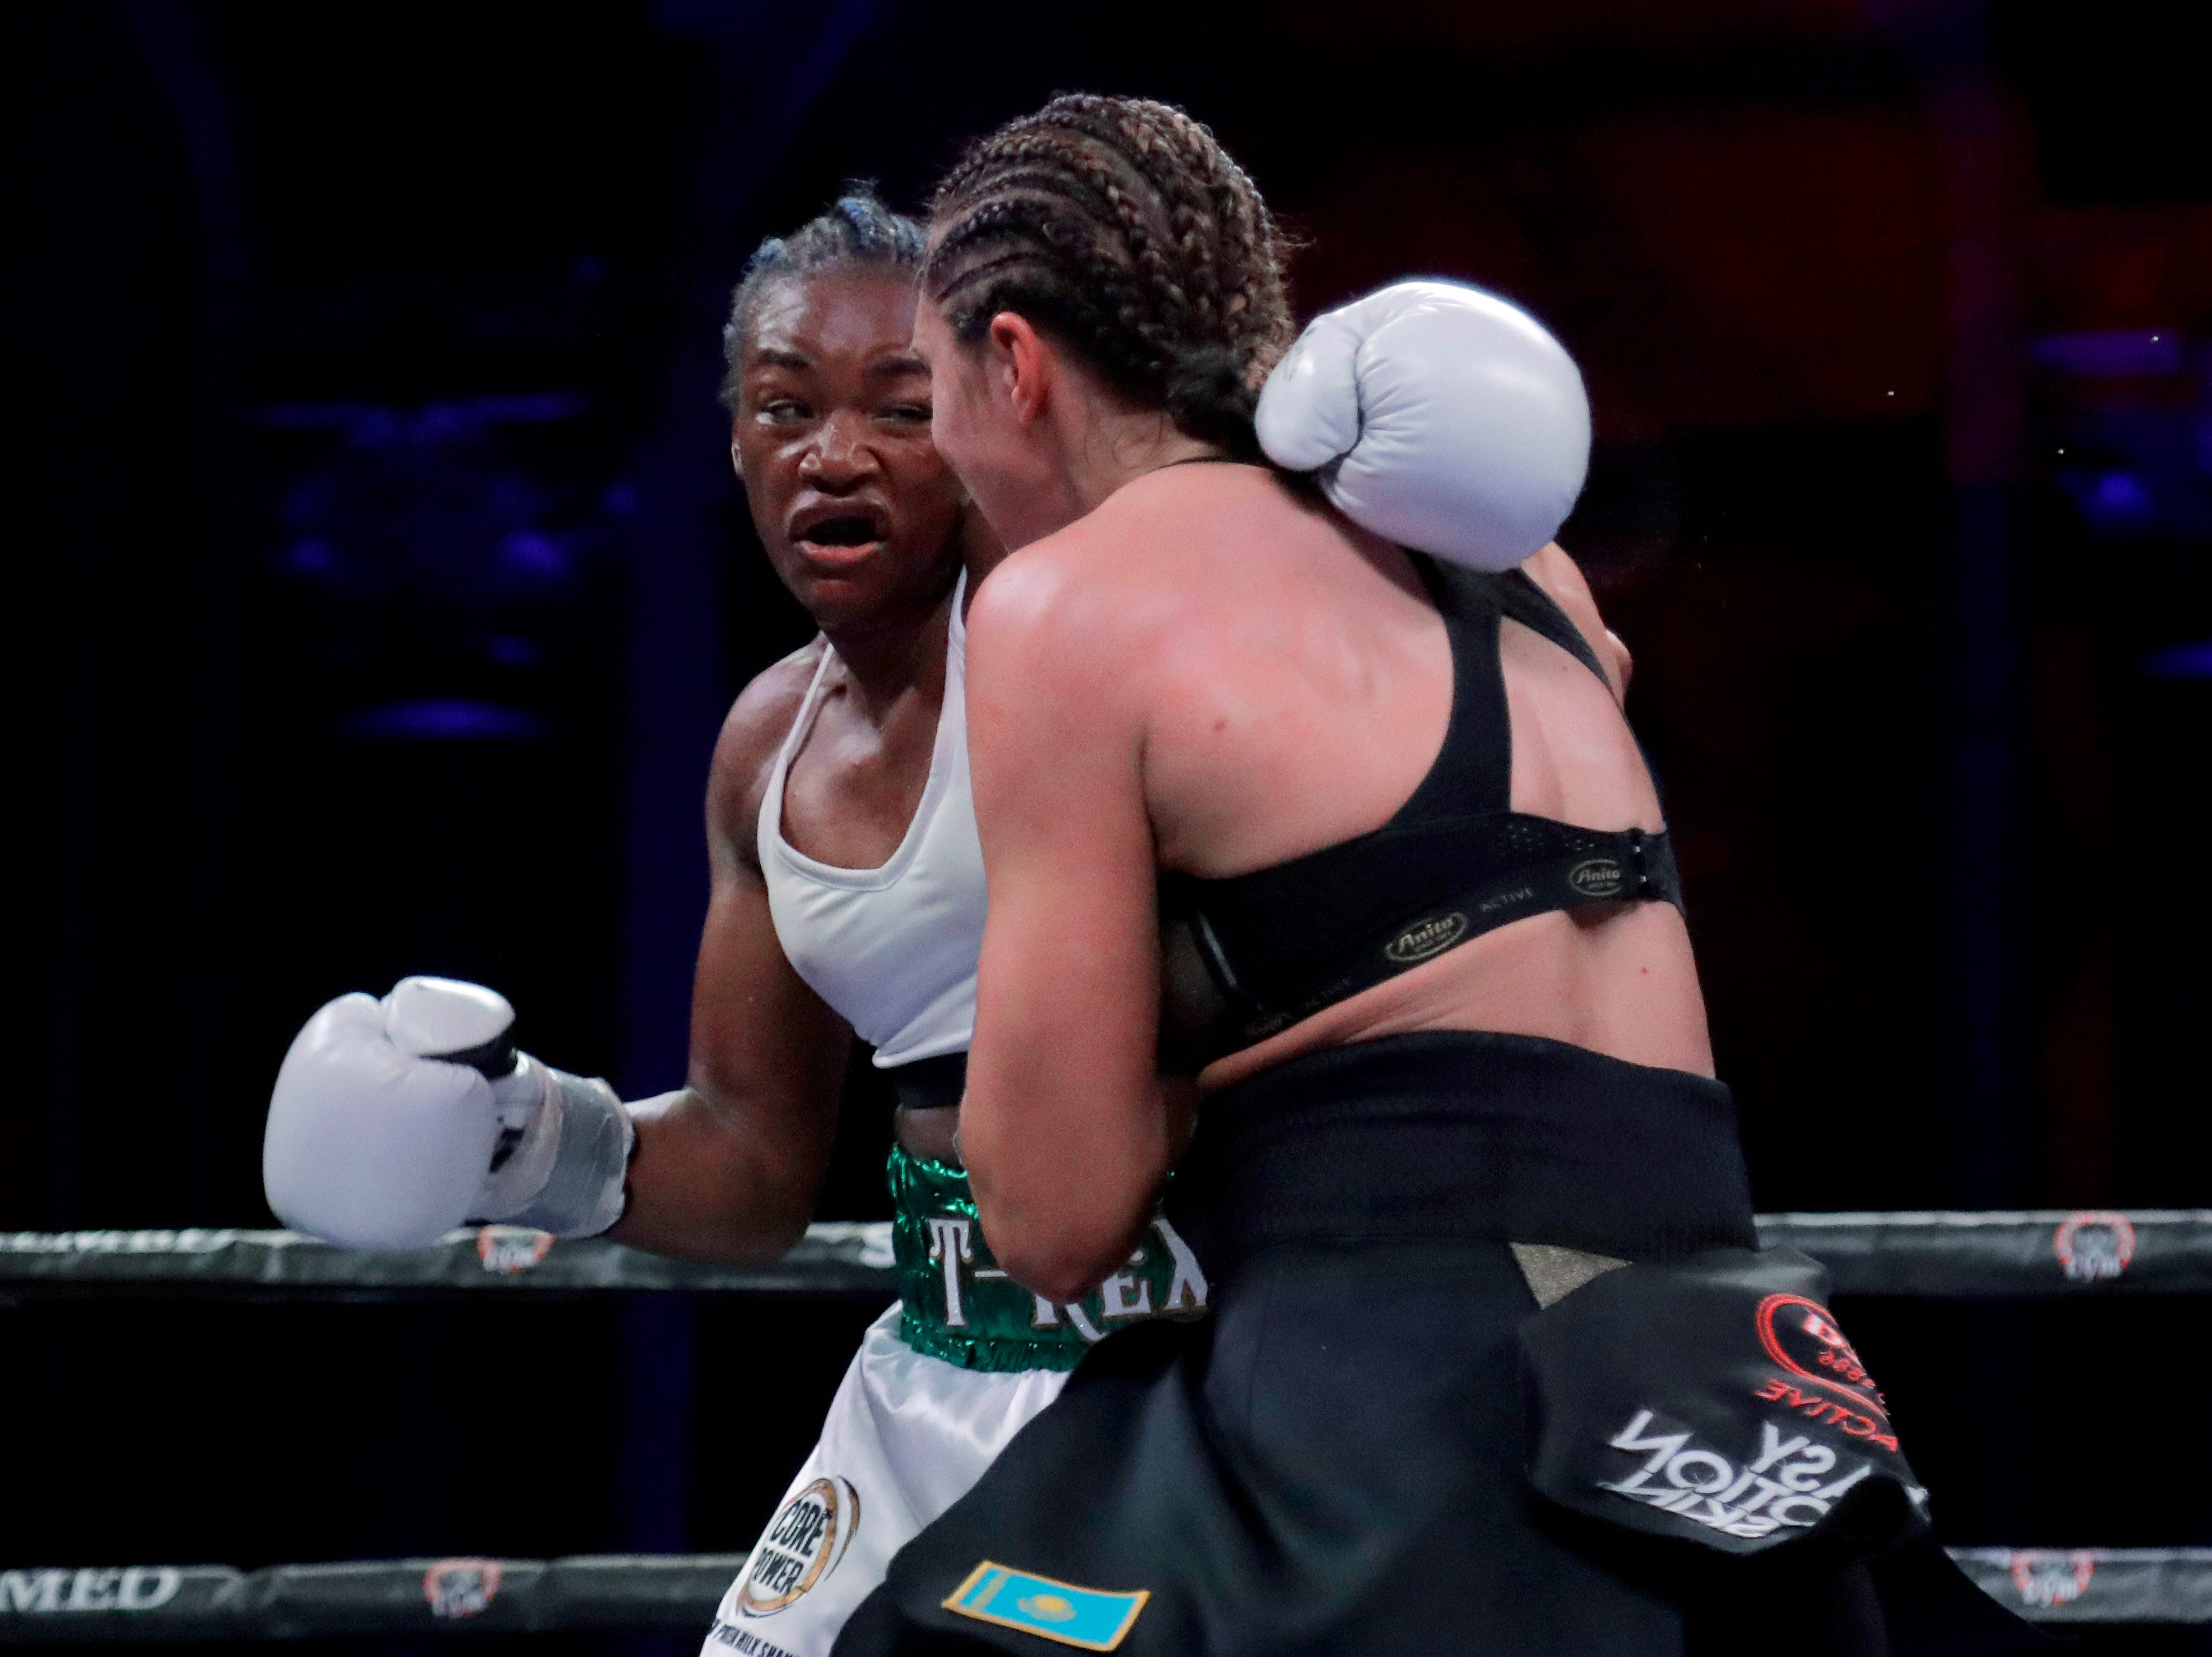 Claressa Shields, left, and Christina Hammer fight during the sixth round of a women's world middleweight championship boxing bout Saturday, April 13, 2019, in Atlantic City, N.J. Shields won by unanimous decision.